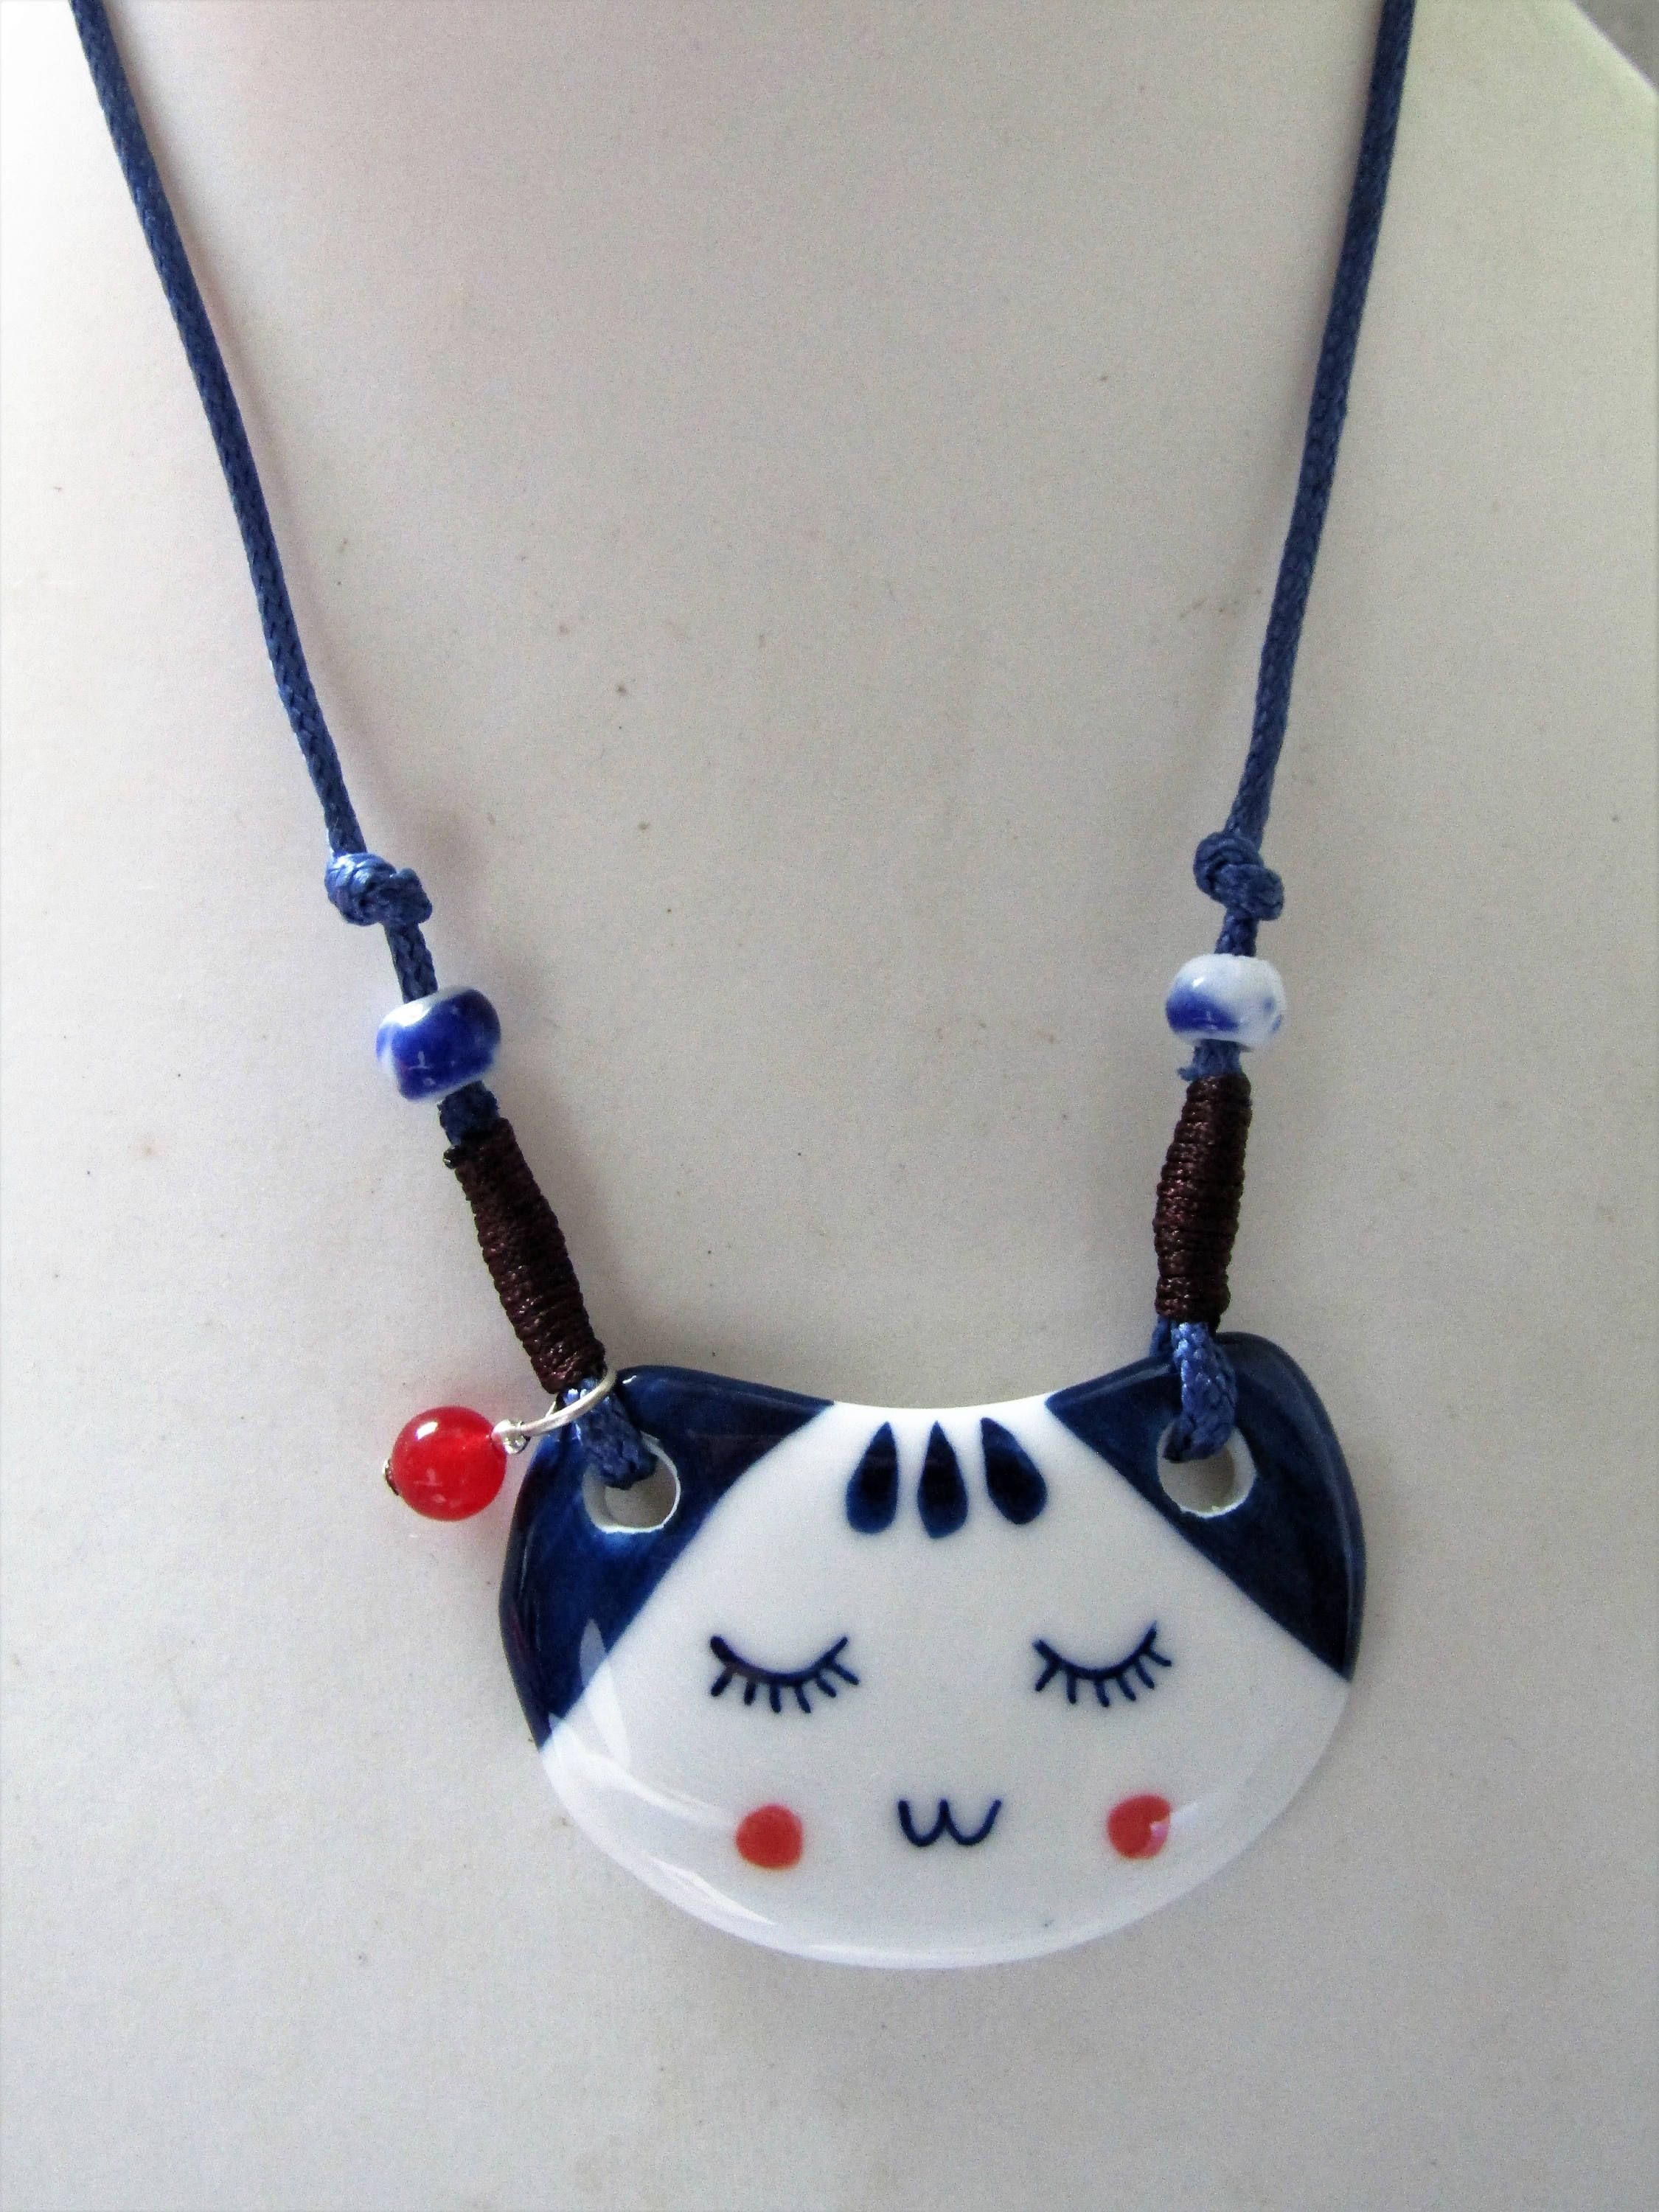 care art jewellery nice about car jewelry the mixed media siamese but they button do pin cat